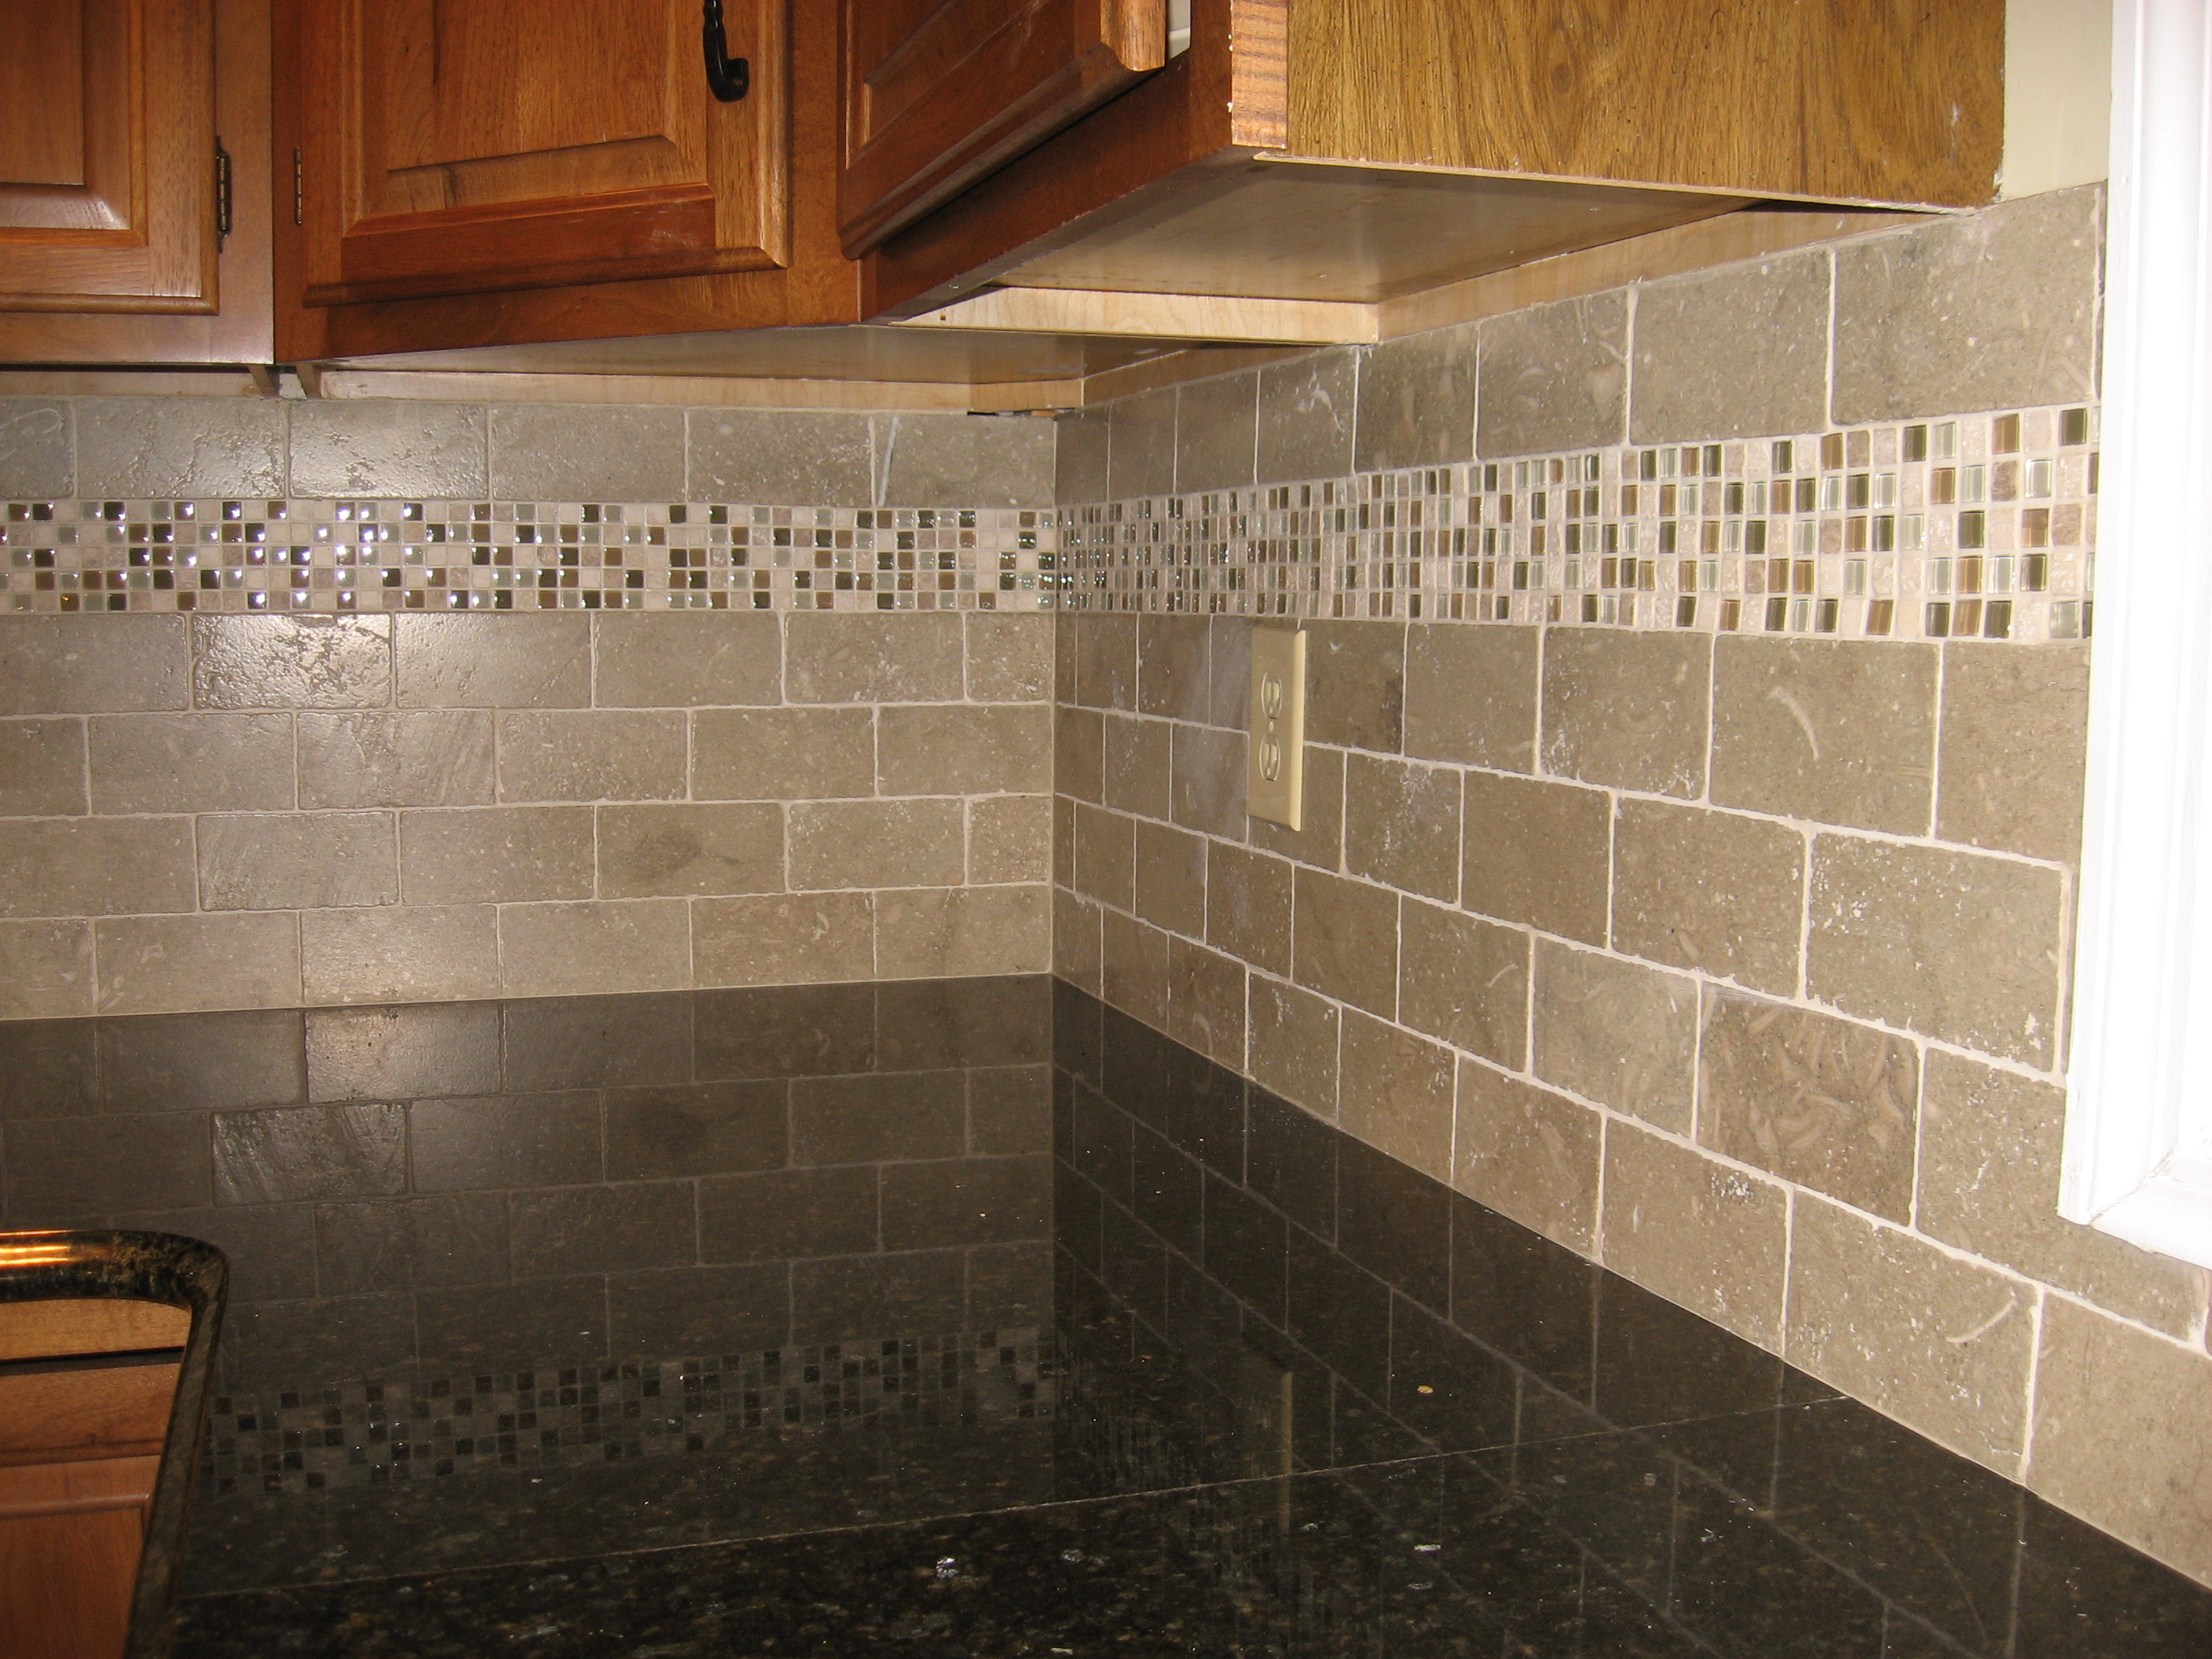 Kitchen Backsplash Ideas Pictures Olive Garden Accent Tiles Backsplash